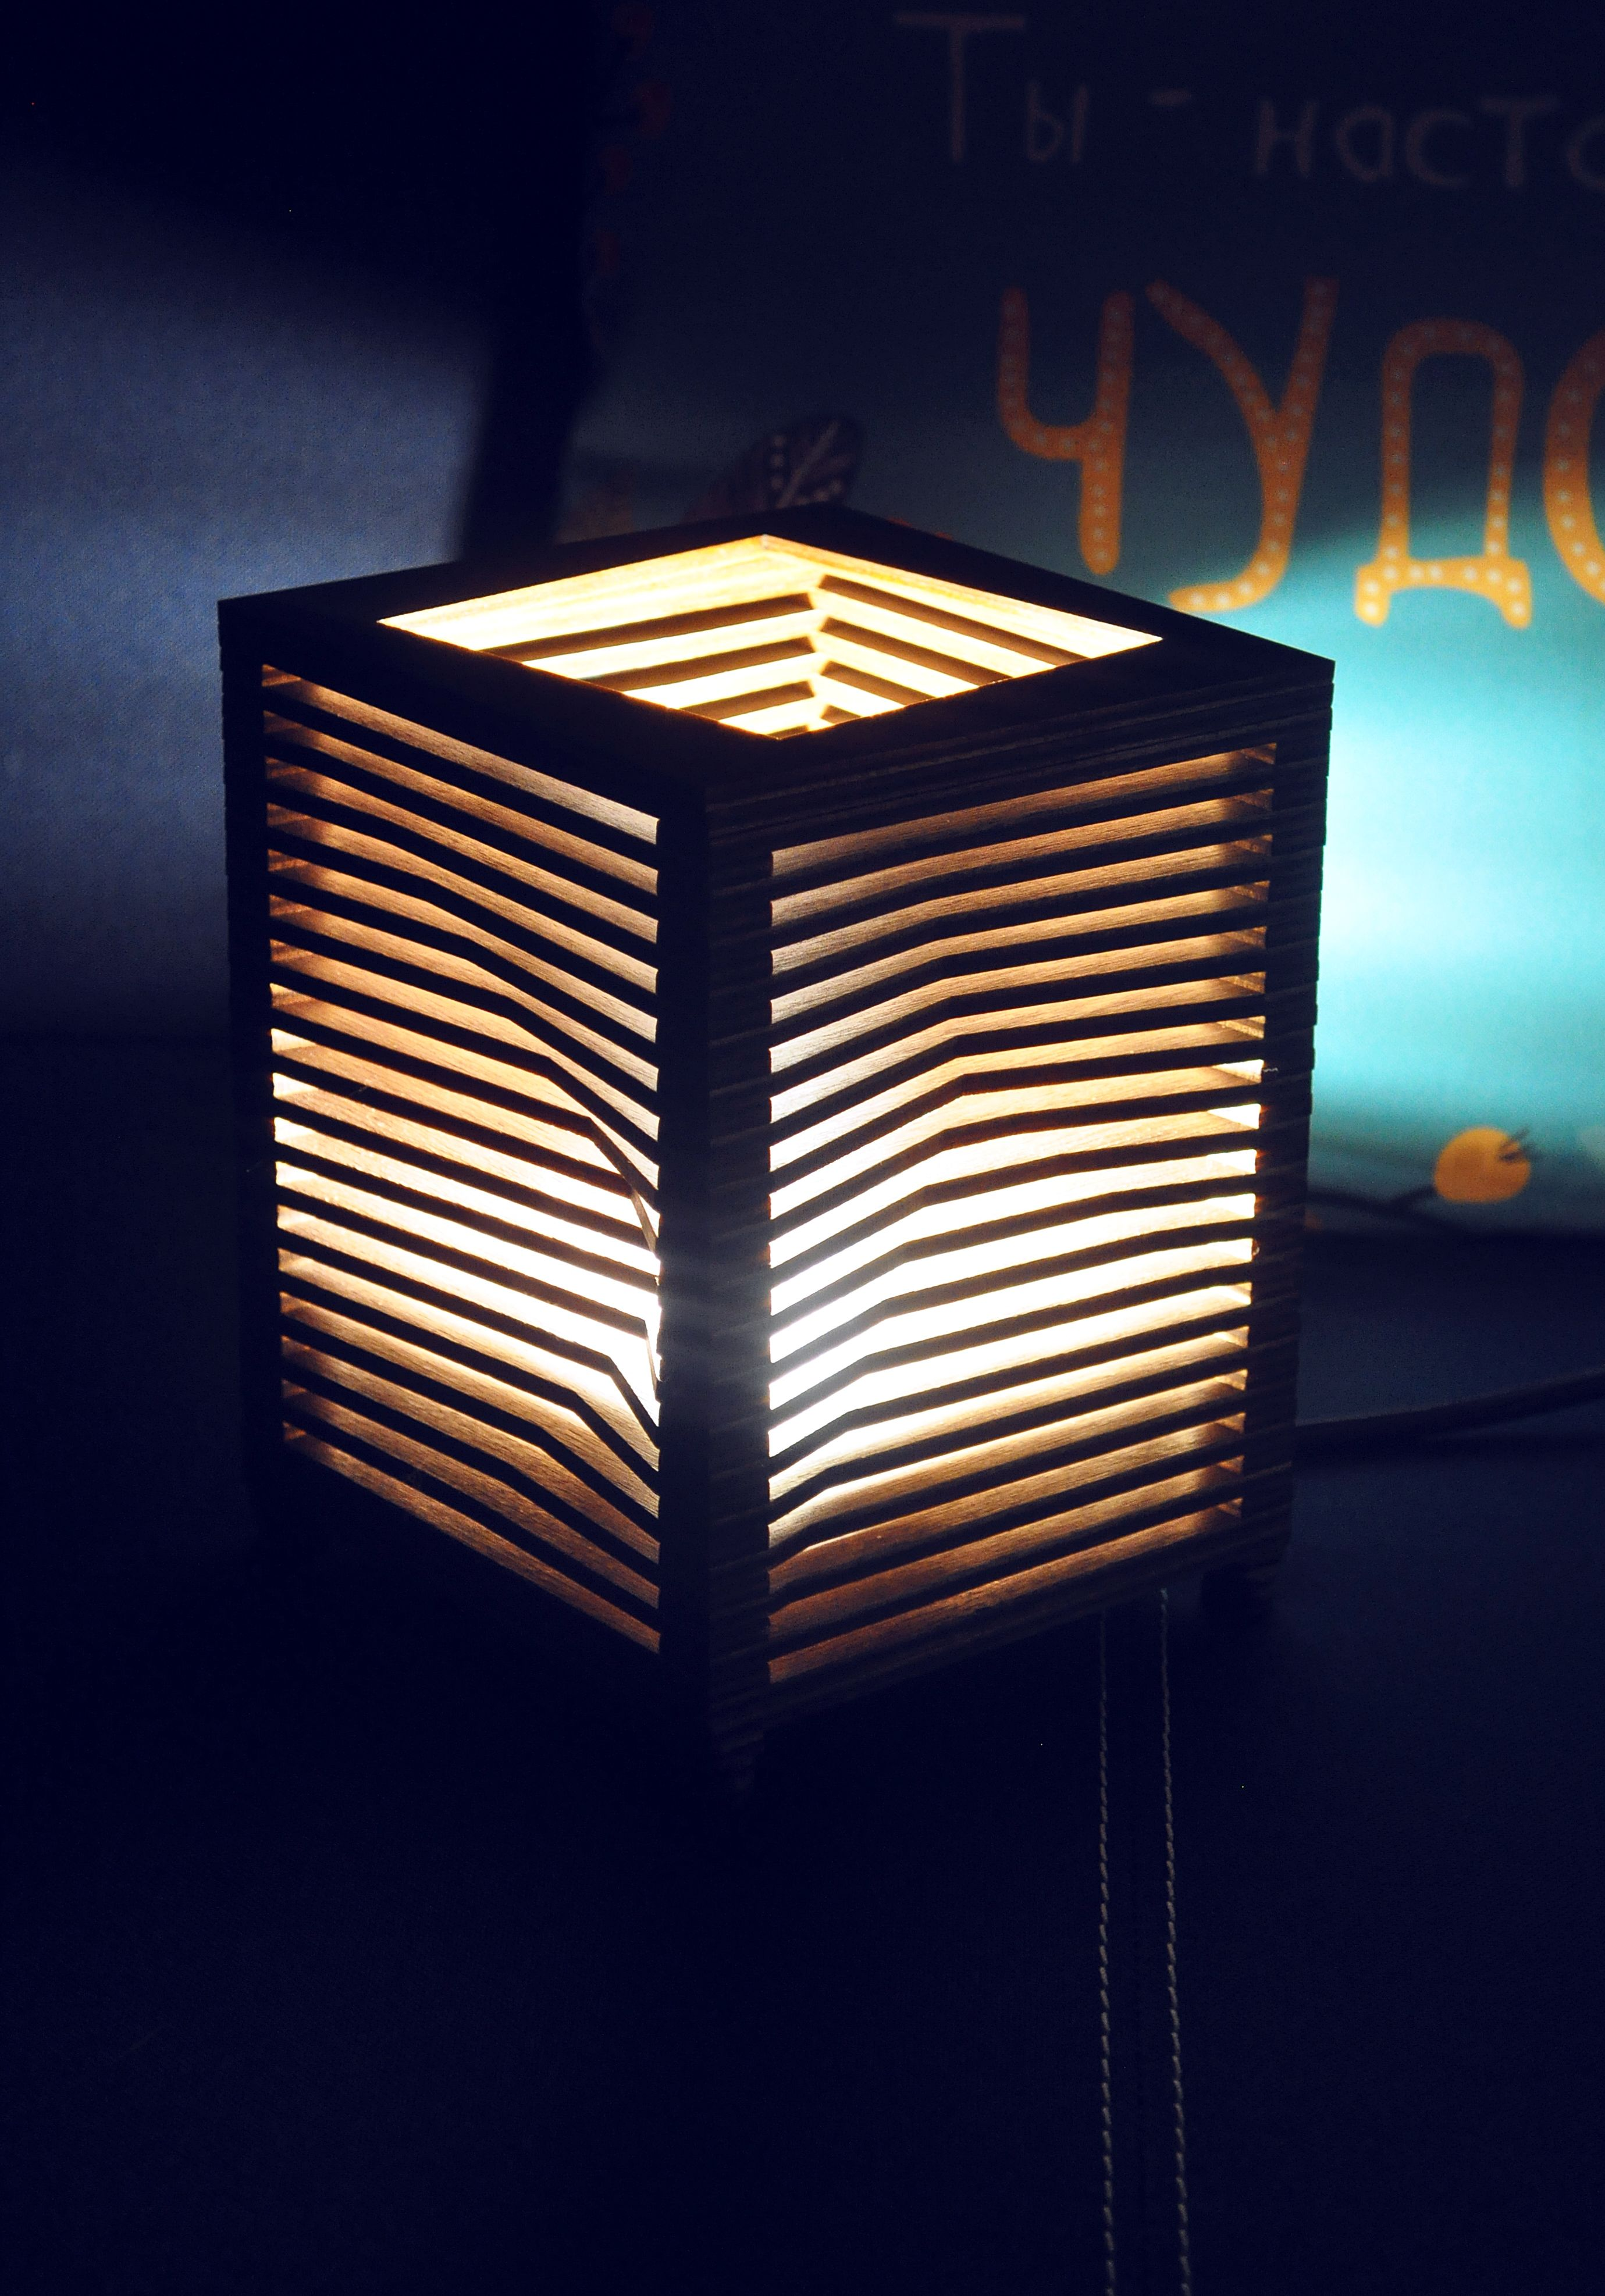 Lamp Pentagon Has Simple And Clear Lines And Reserved Character The Original Geometric Shape Solu Bedside Lamps Wood Wooden Bedside Lamps Wooden Table Lamps